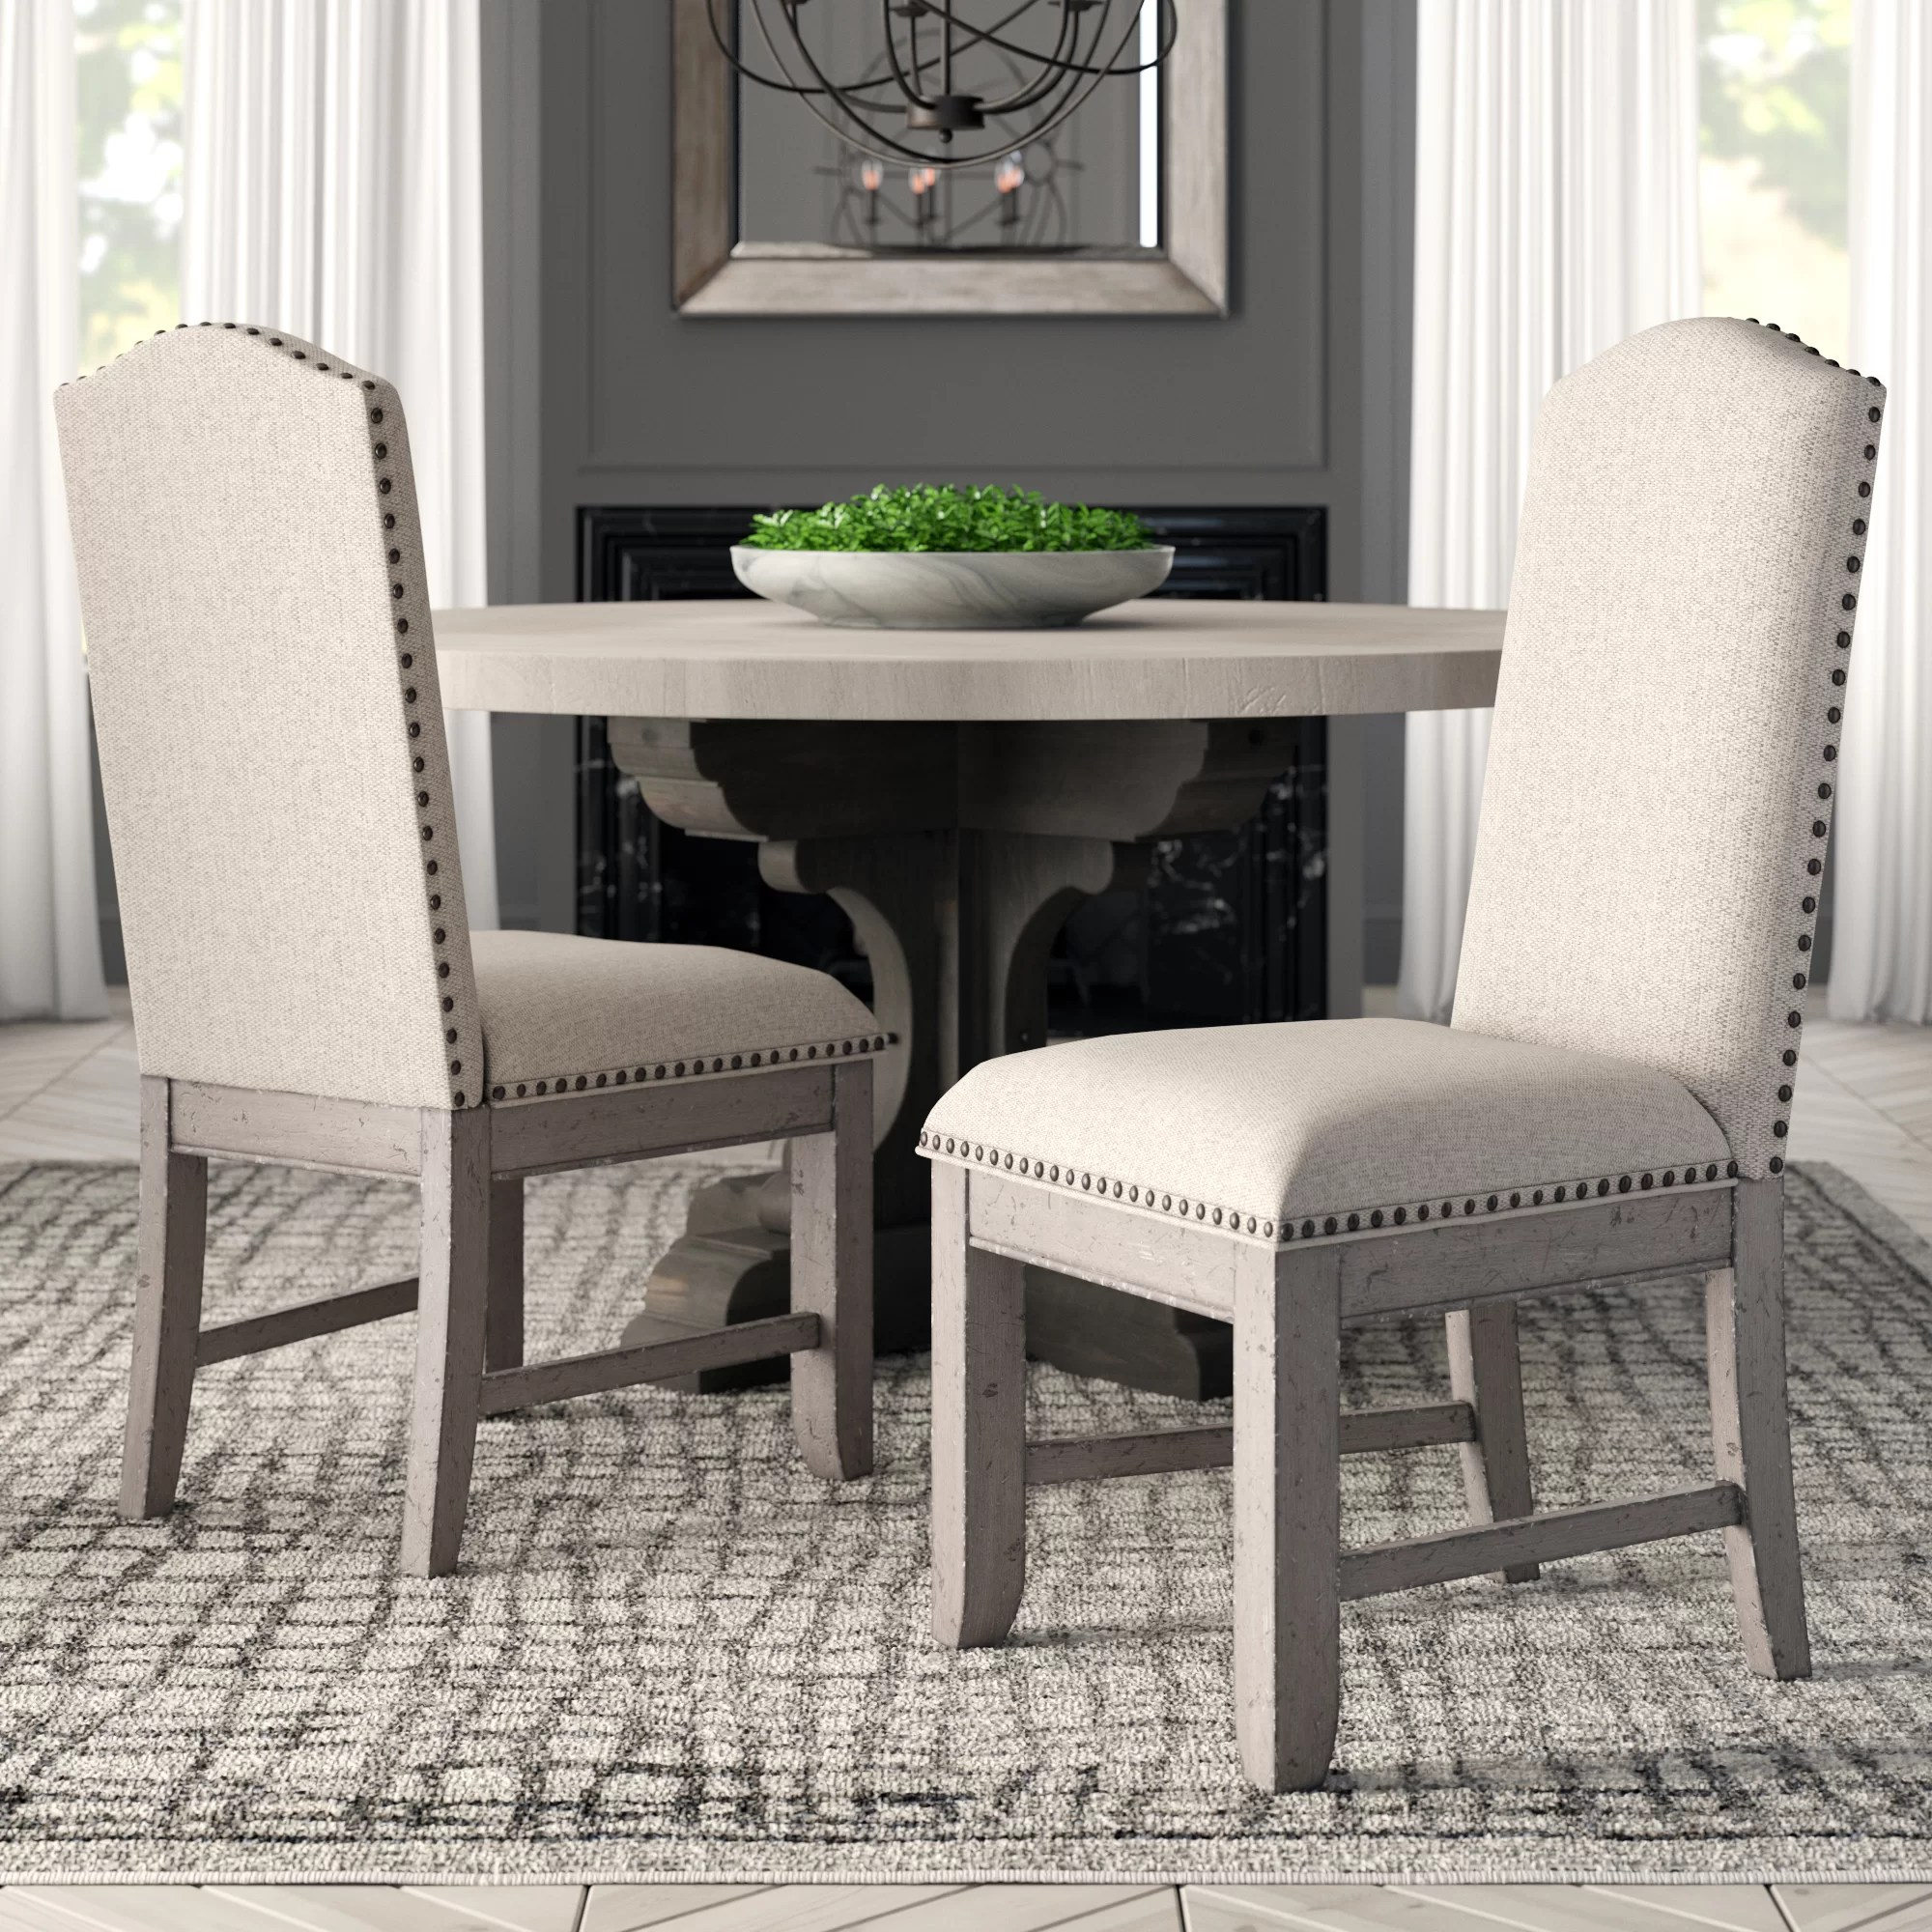 Dining Room Upholstered Chairs Devers Upholstered Dining Chair